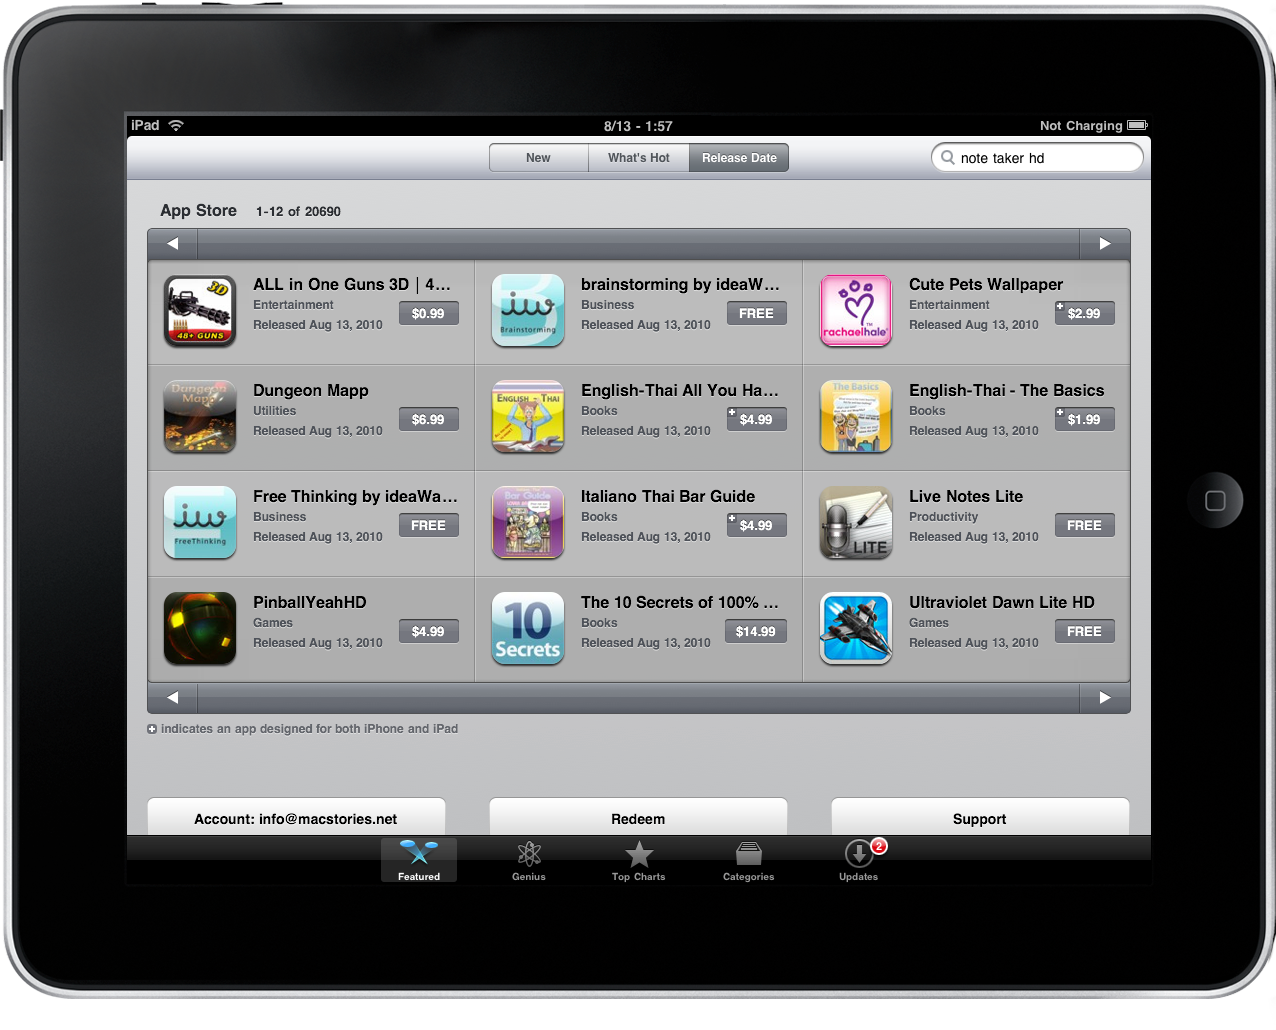 App Store Now With Over Ipad Apps Macstories